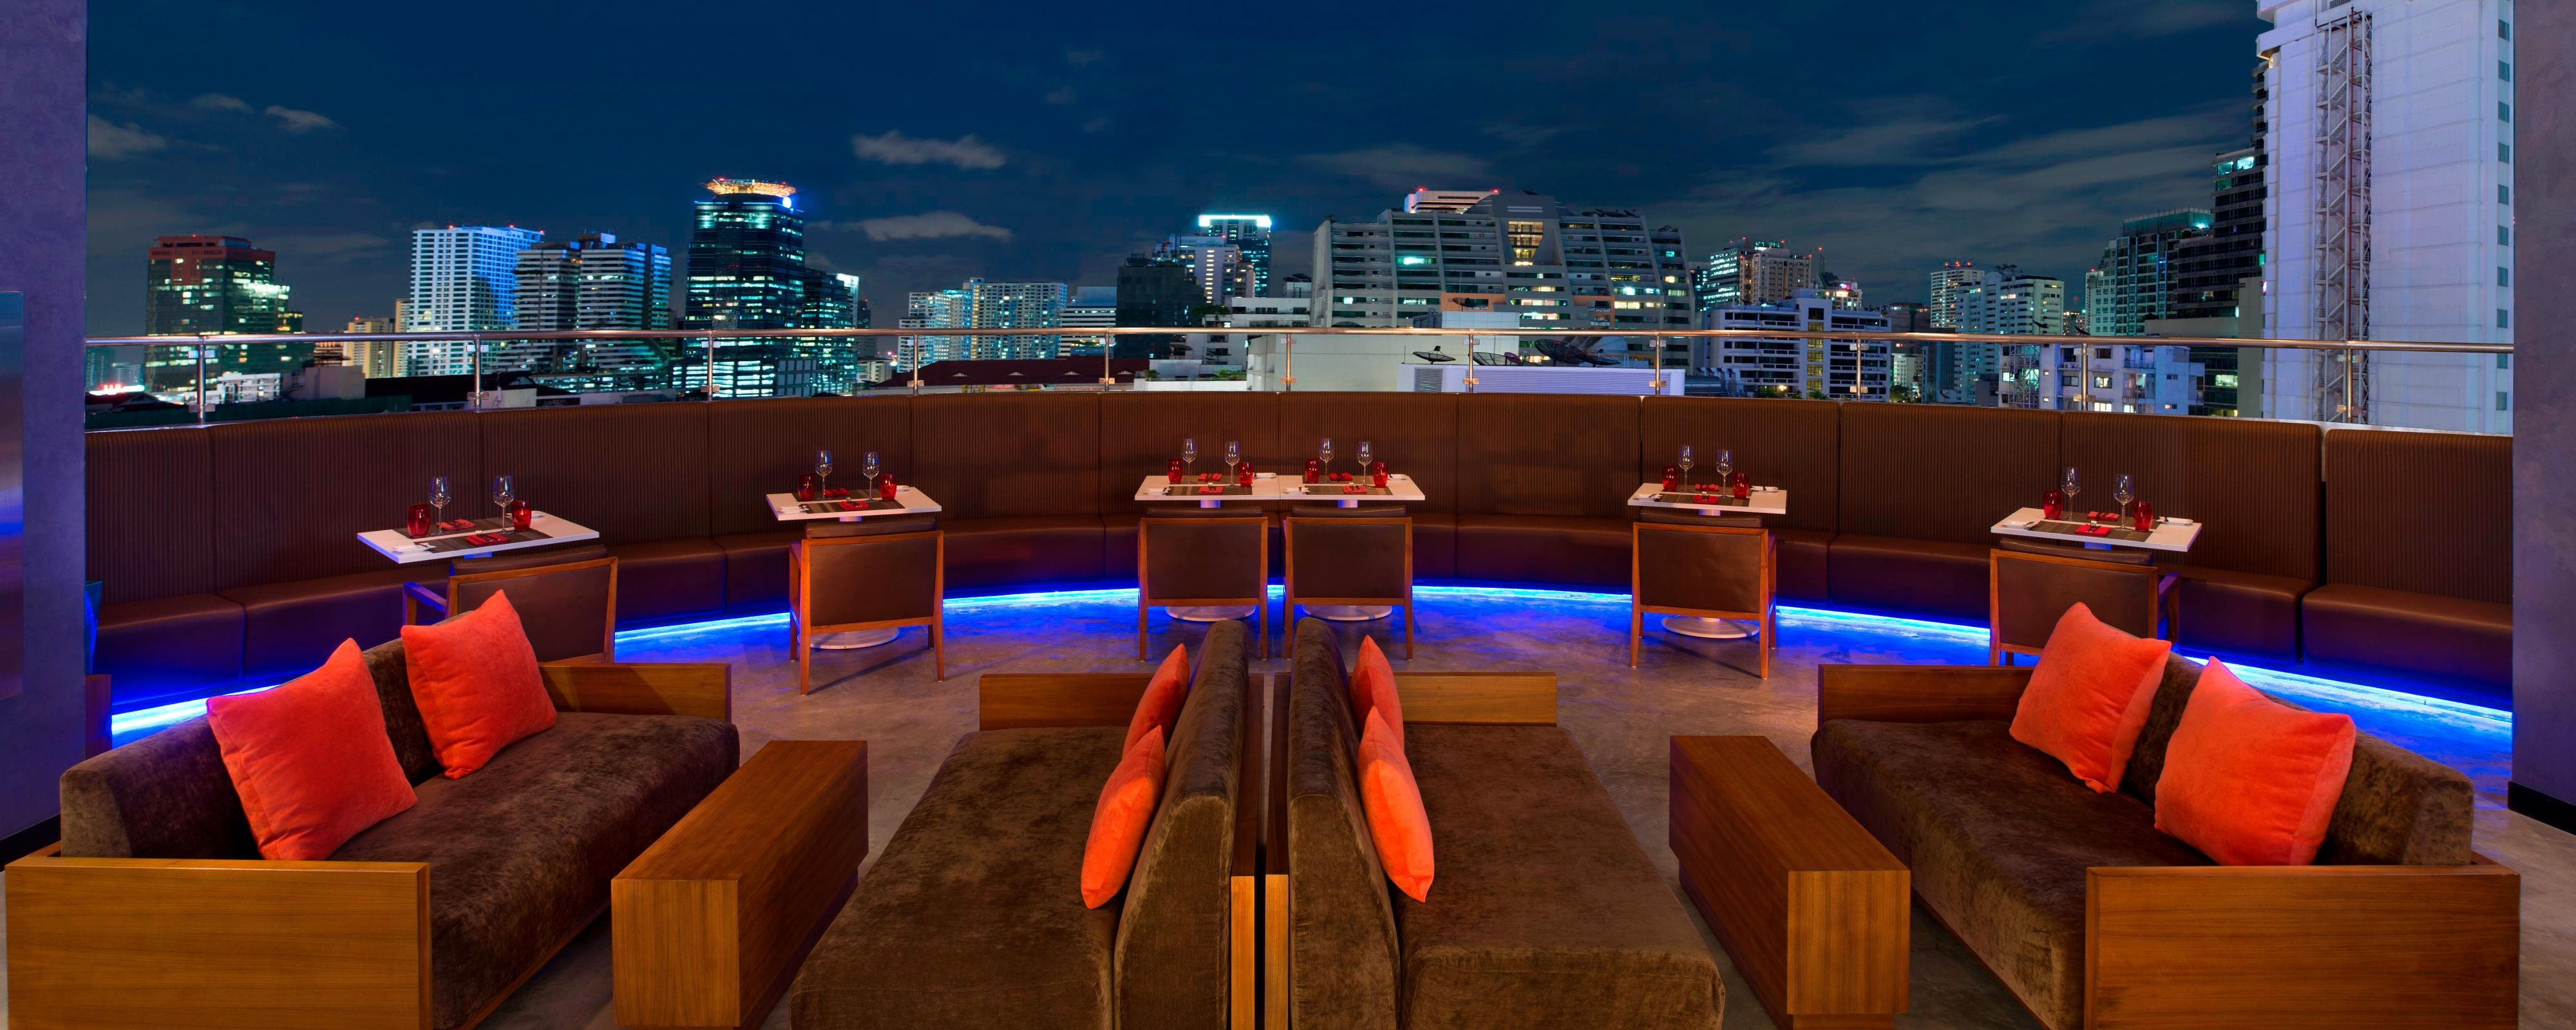 Crave Wine Bar and Restaurant - outdoor terrace